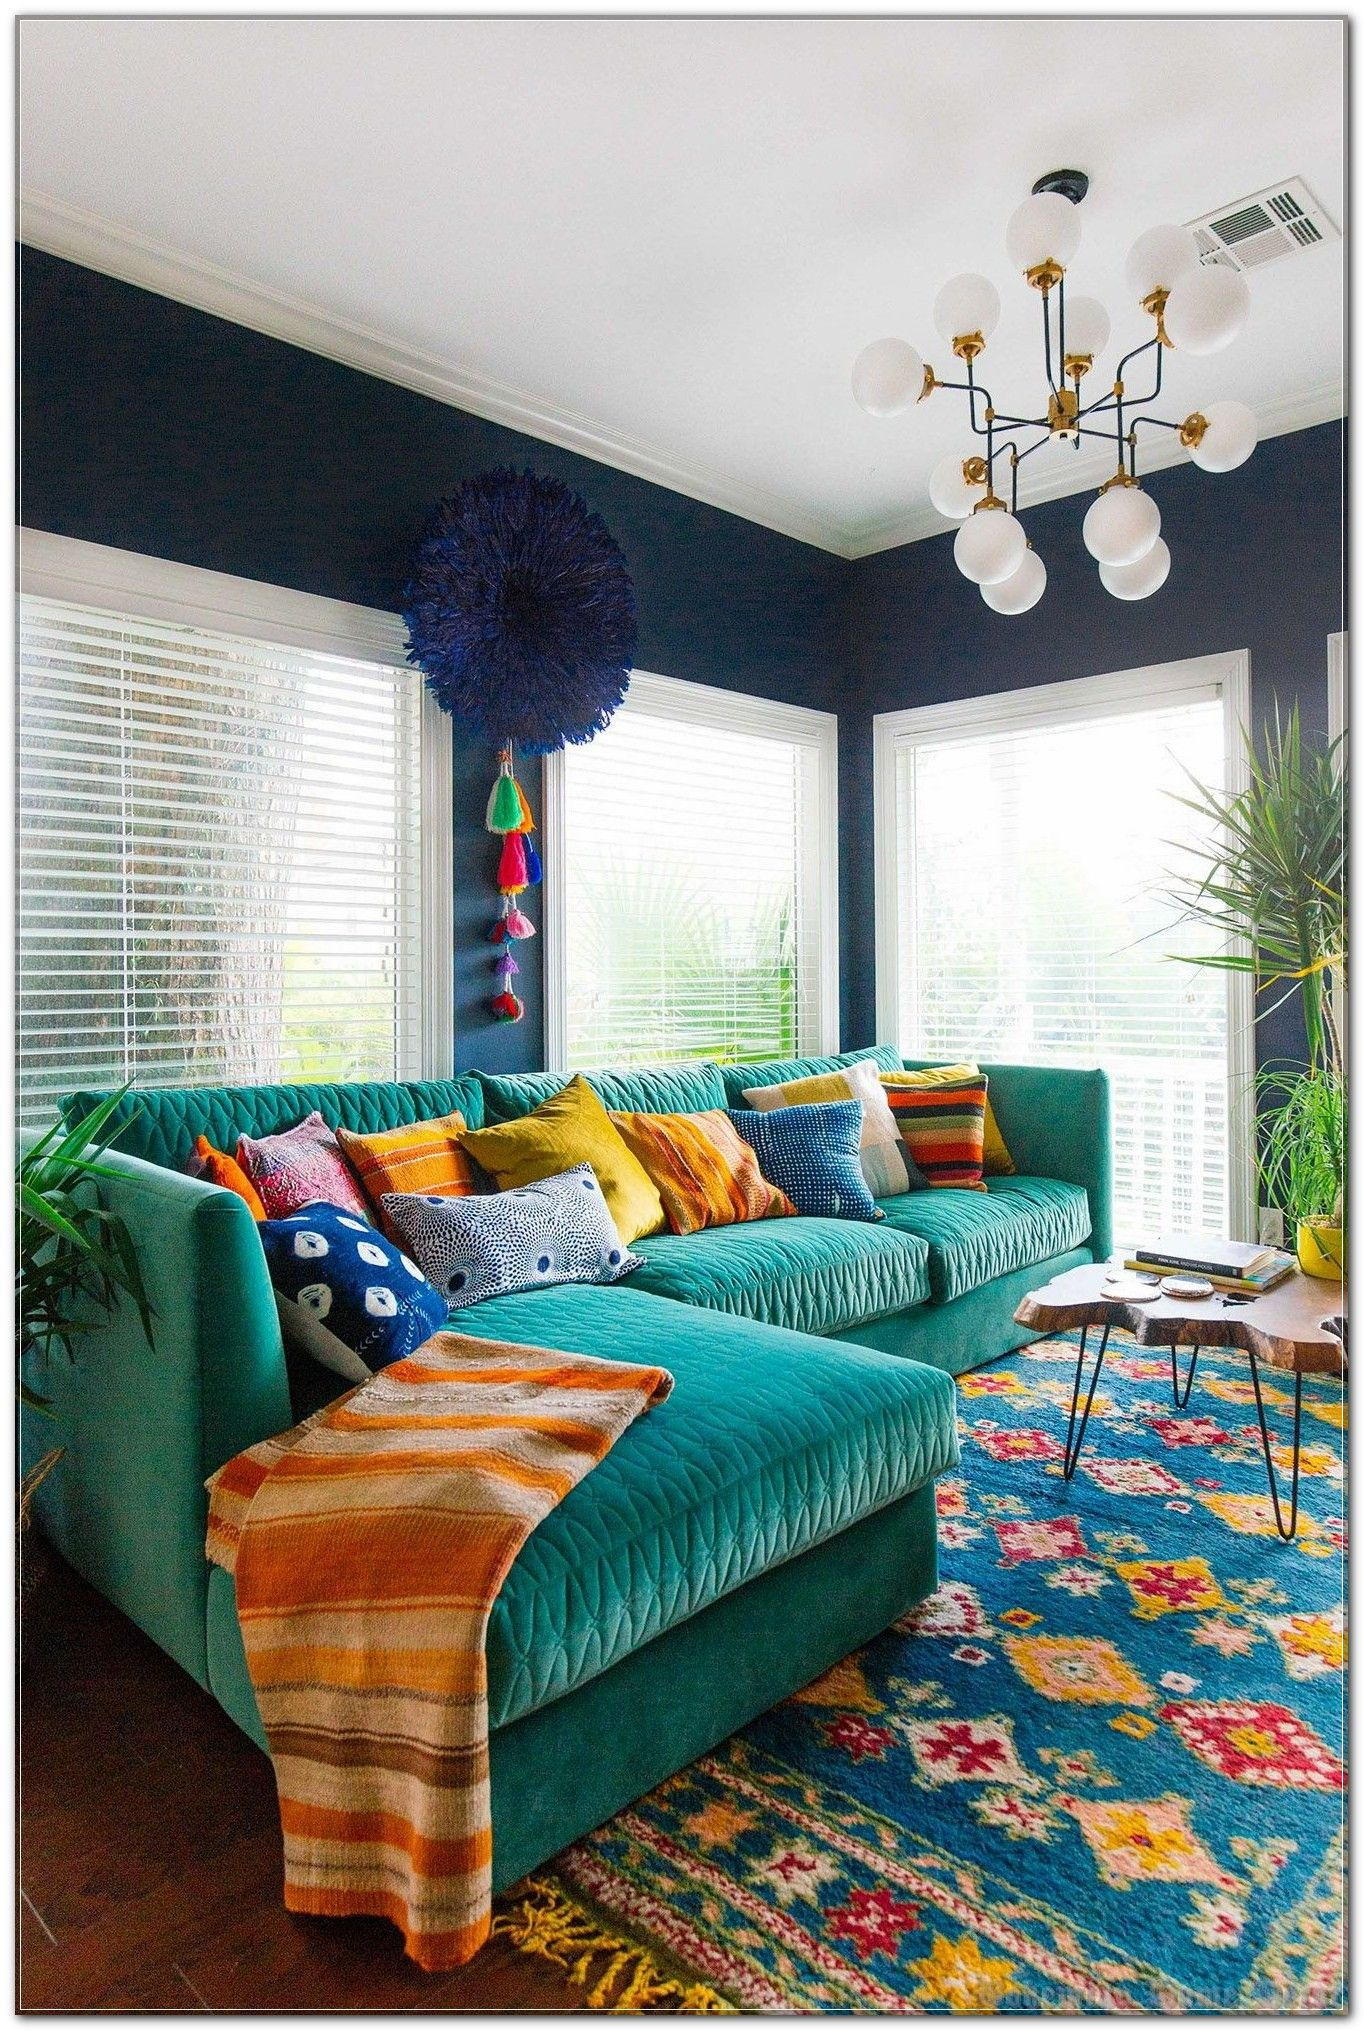 Take 10 Minutes to Get Started With Bohemian Home Decor